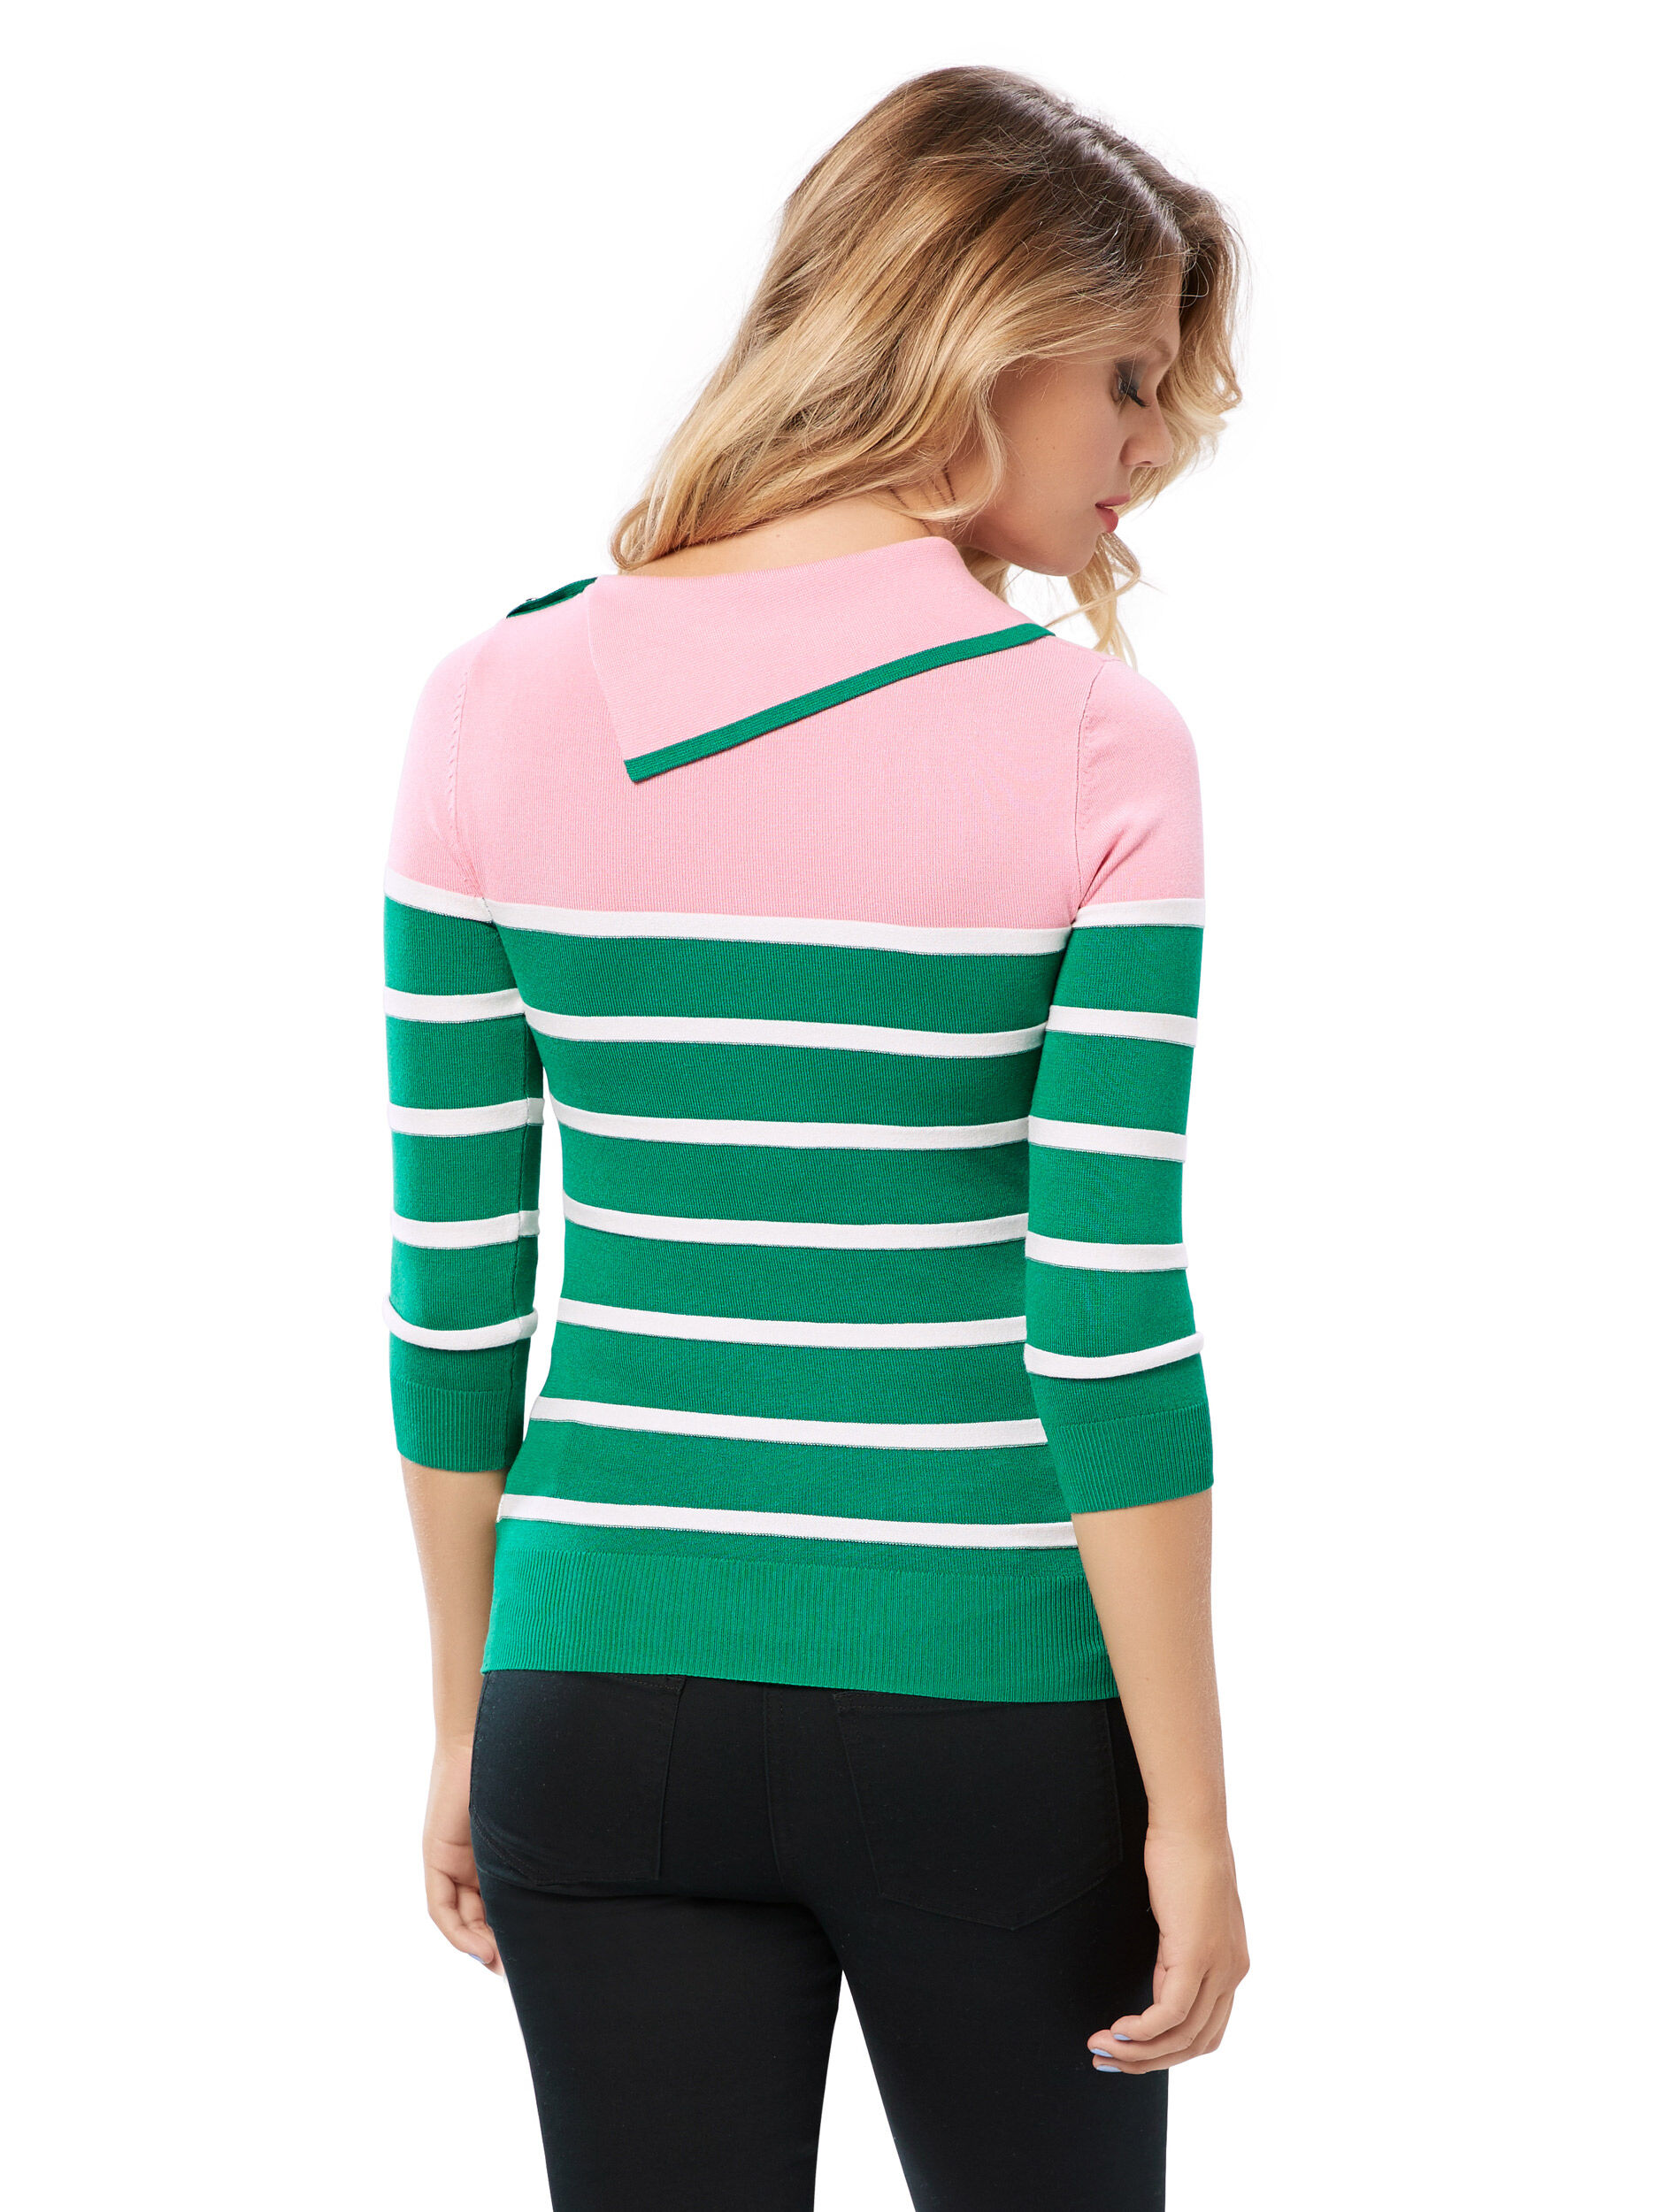 Green With Envy Jumper